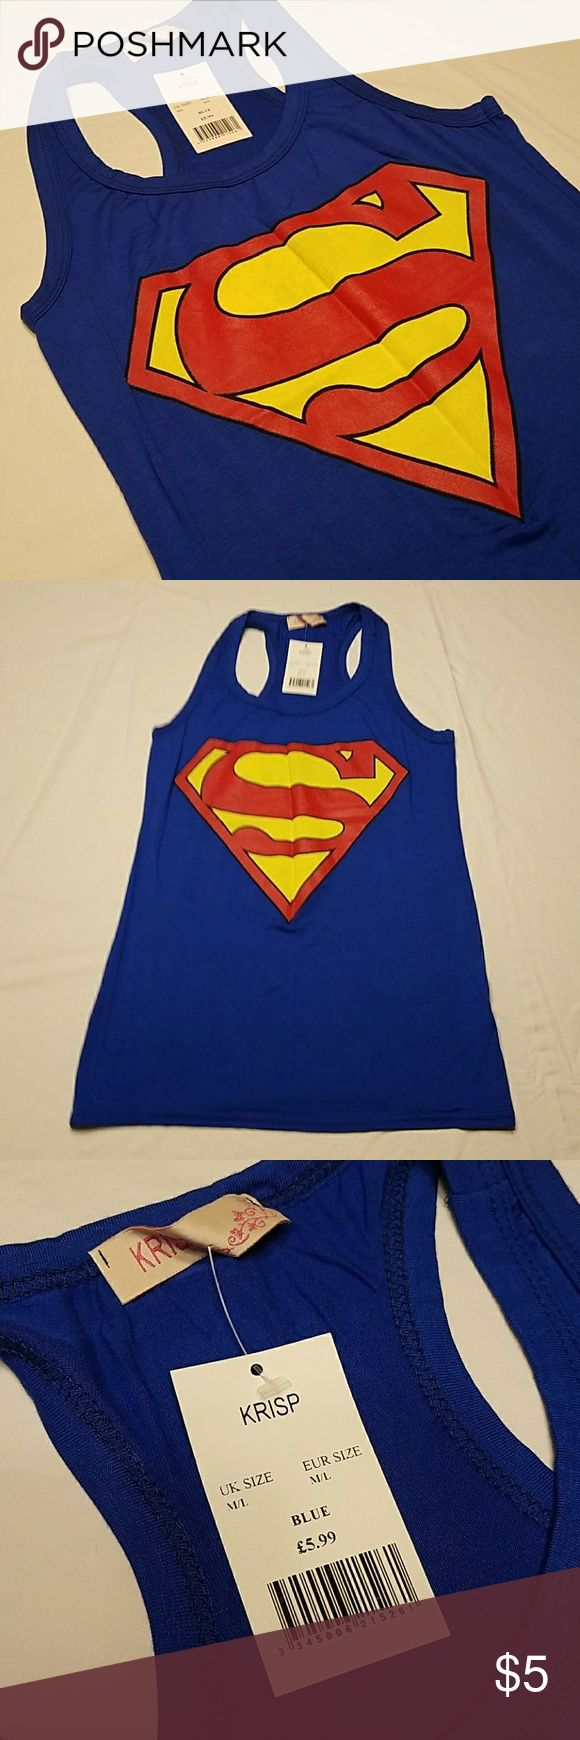 "Racerback Superman Tank Top NWT Racerback Superman Tank Top. NWT. EUR size M/L. Measures 15"" across bust, 18"" from armpit to bottom hem. Lots of stretch. Super soft material. Krisp Tops Tank Tops"